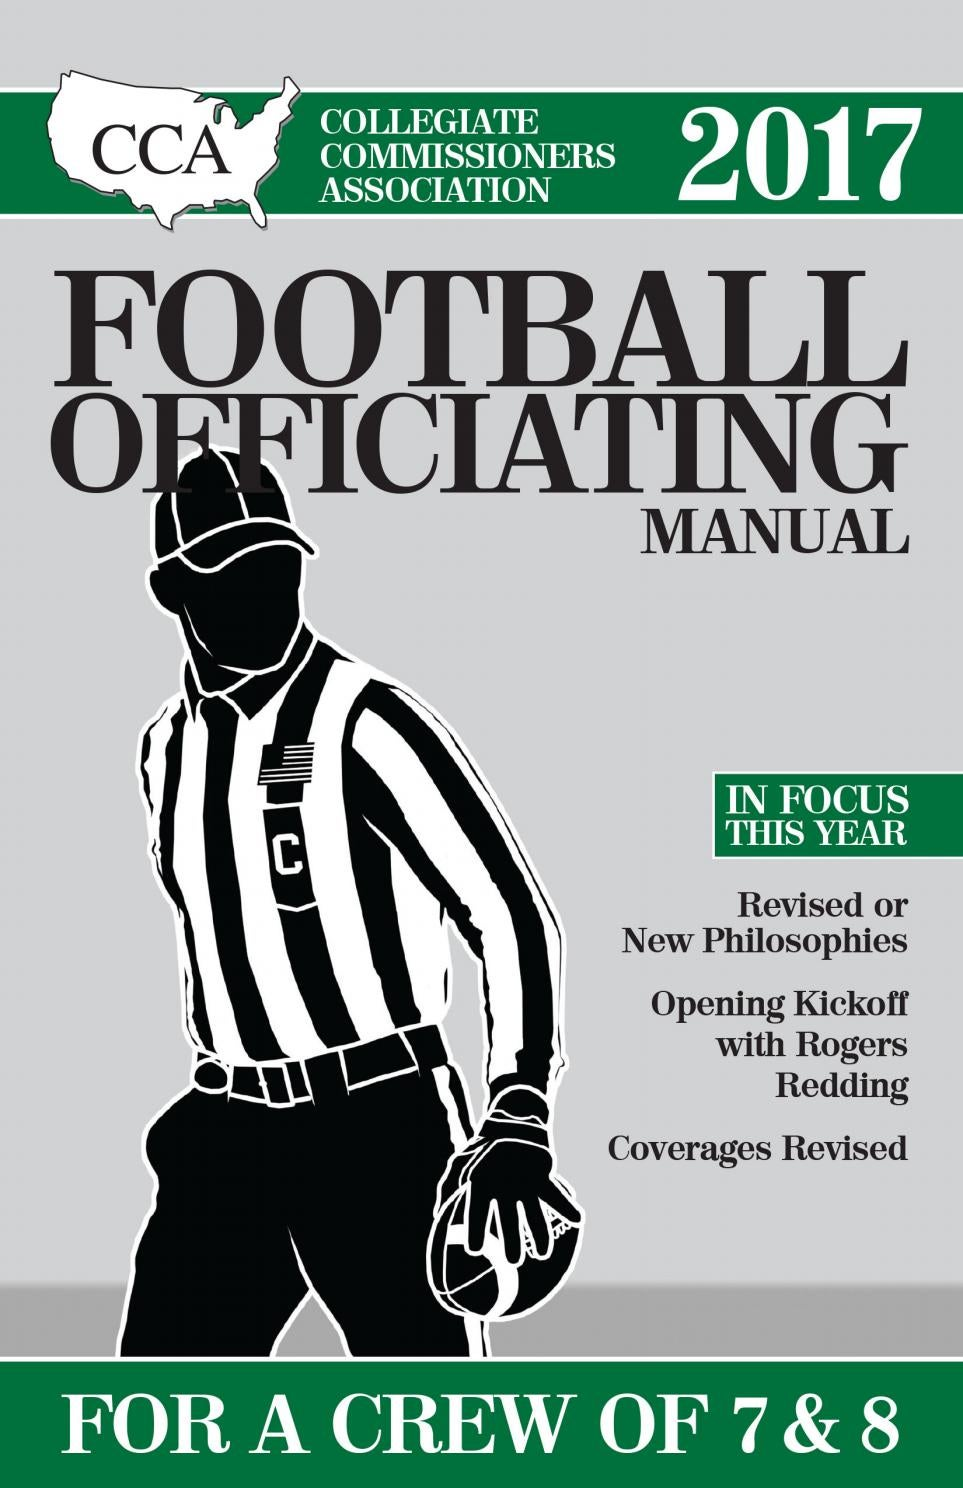 2017 CCA Crew of 7 & 8 College Football Officiating Manual by Referee  Magazine - issuu